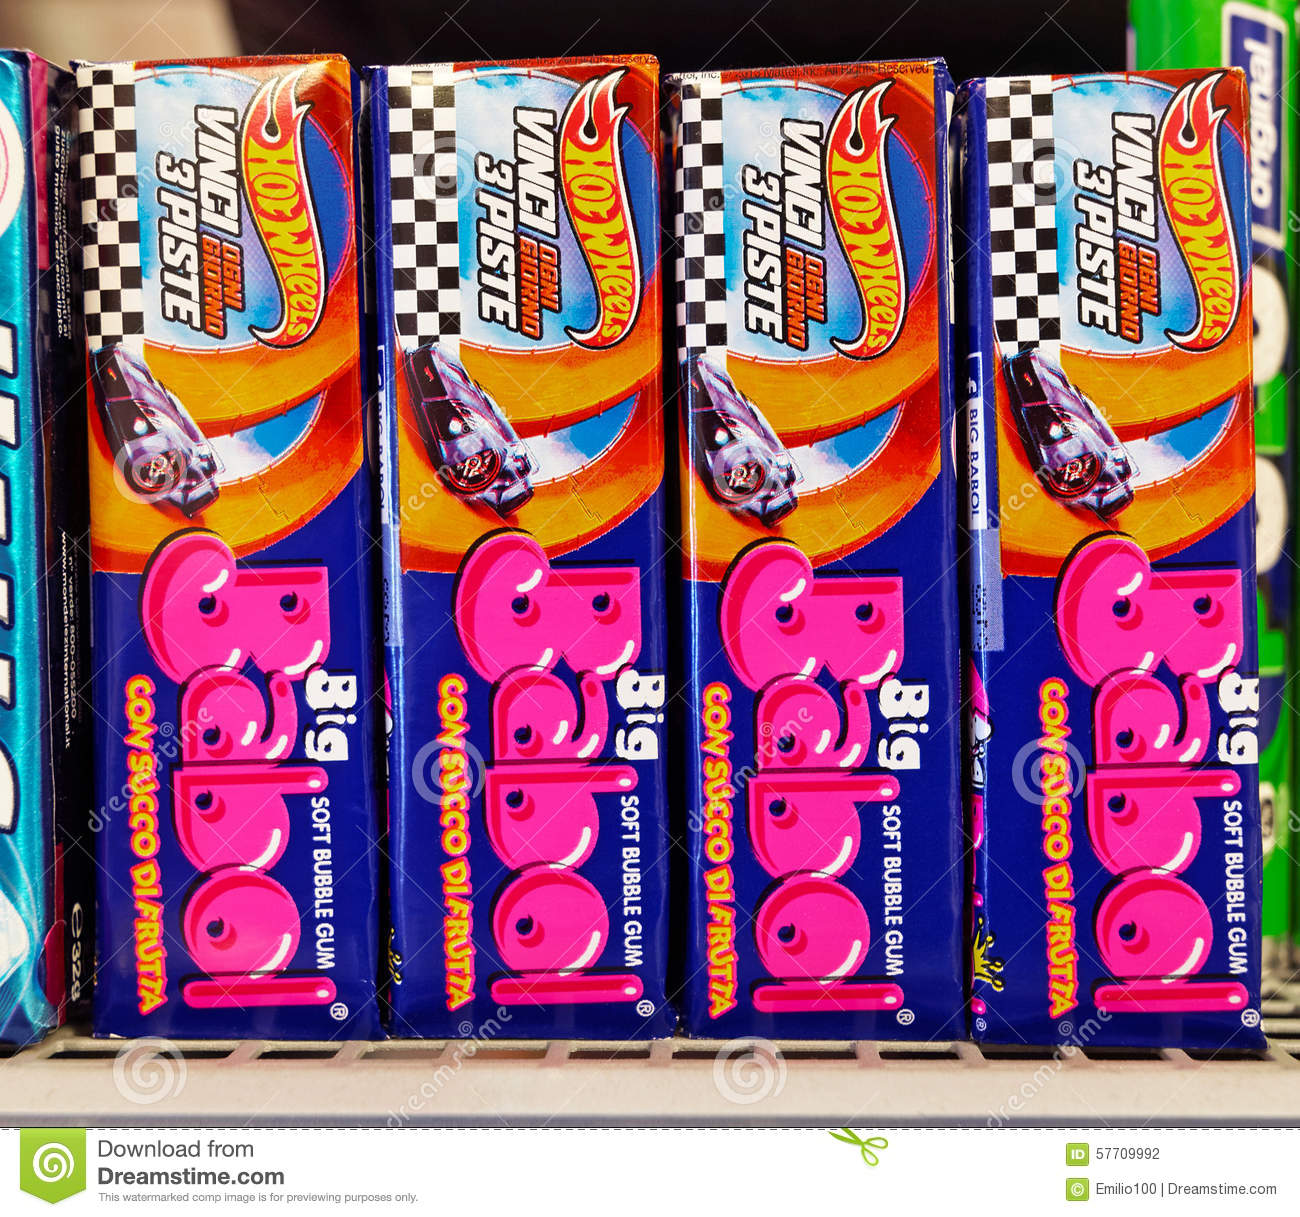 Soft Bubble Gum on a shelf in a supermarket. Big Babol, the bubble gum ...